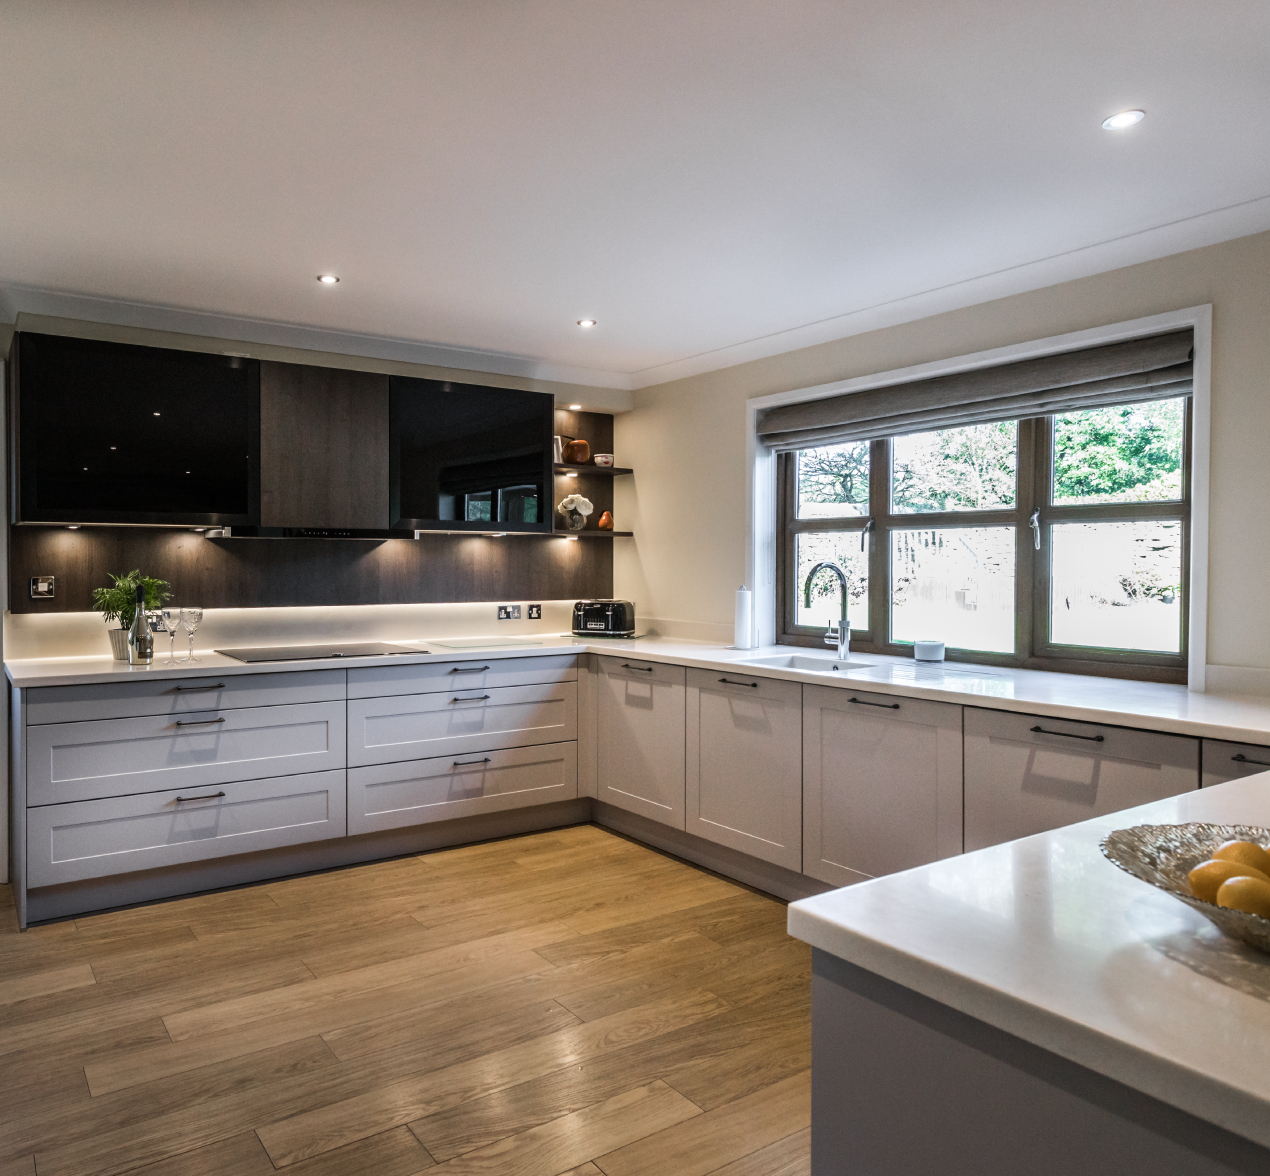 Elworth Kitchen Island Within Most Up To Date Designer Kitchens (View 24 of 25)